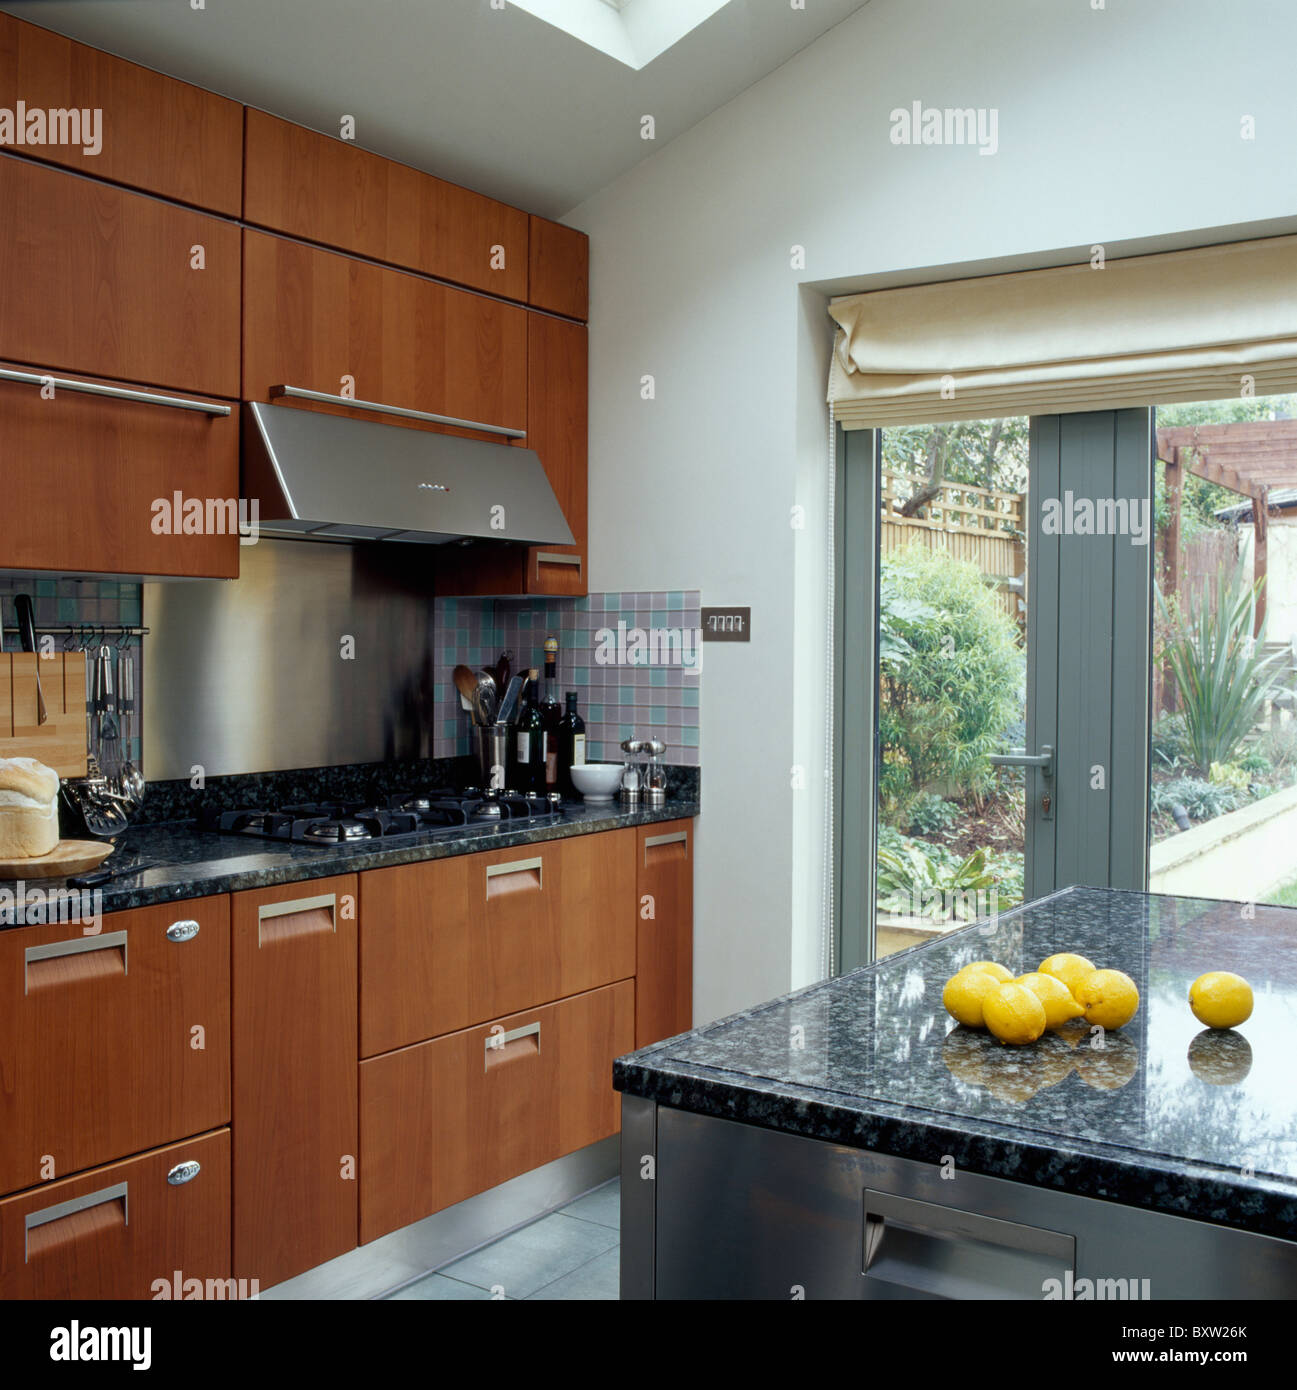 Kitchen Granite Worktop Chrome Extractor Above Hob In Granite Worktop Of Fitted Wood Unit